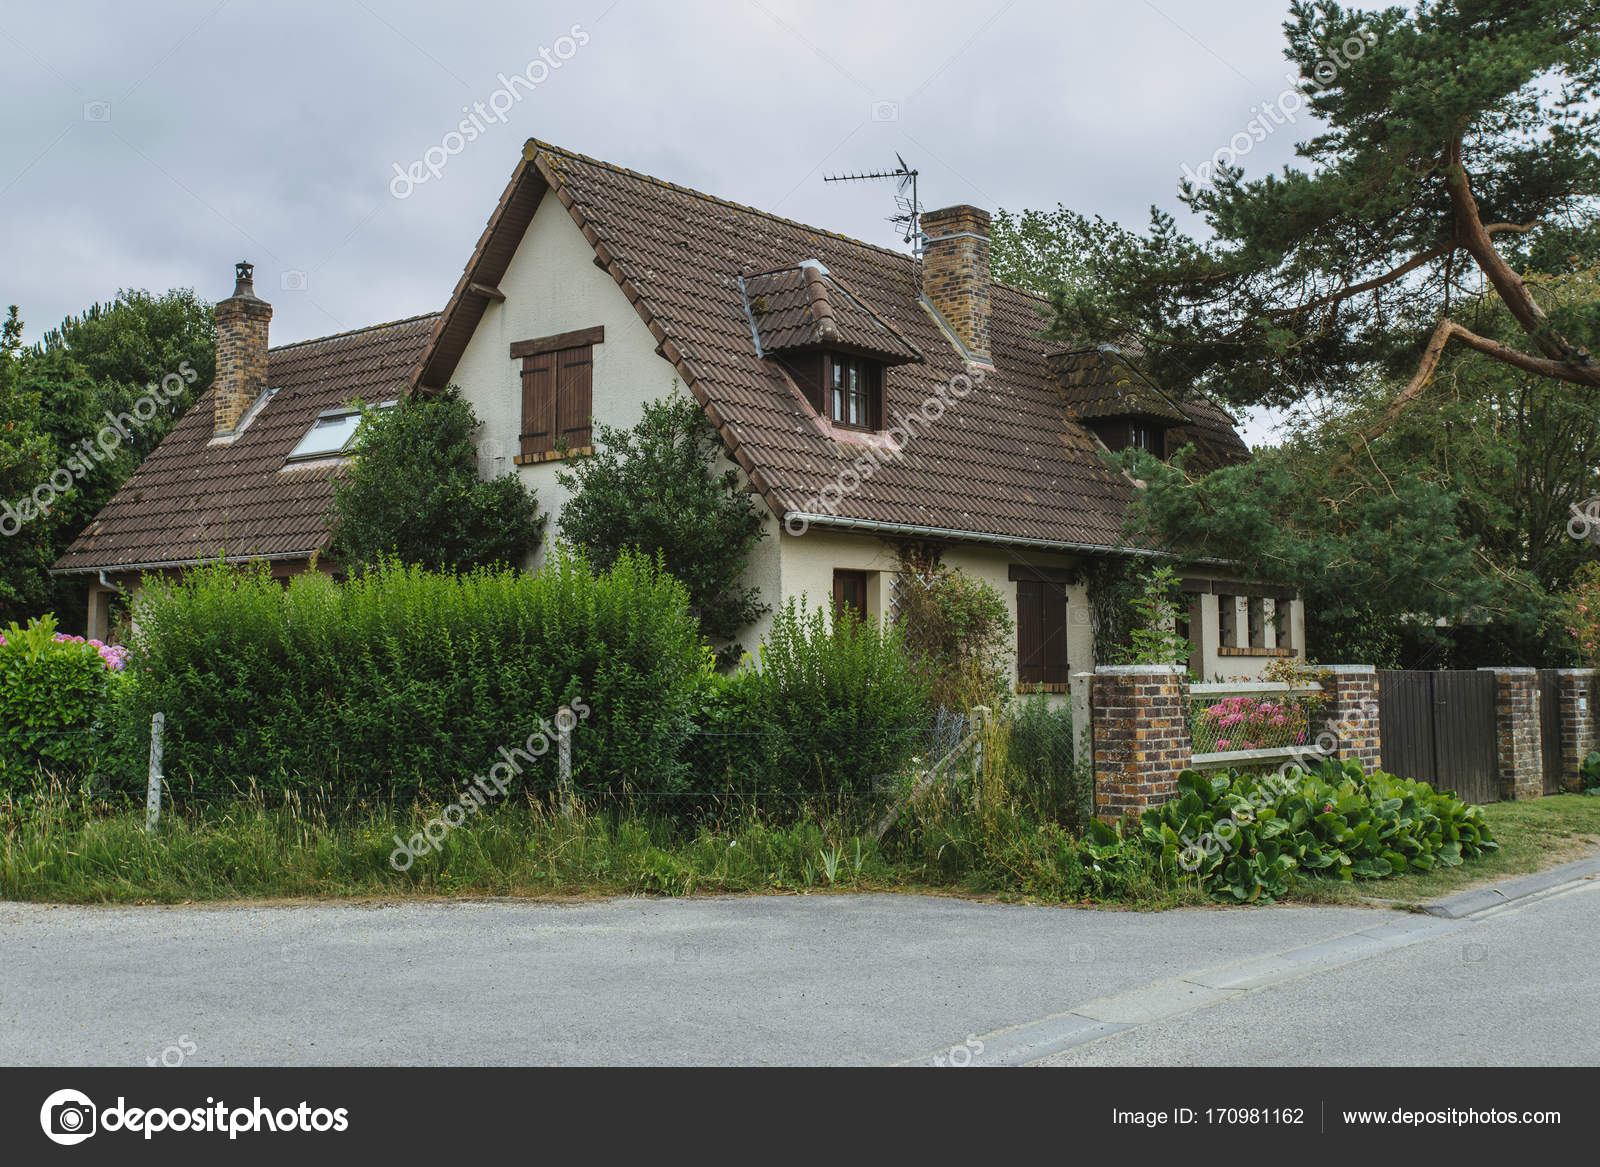 Country Houses With Green Fences And Streets In The Region Of Normandy France Beautiful Countryside Lifestyle Typical French Architecture